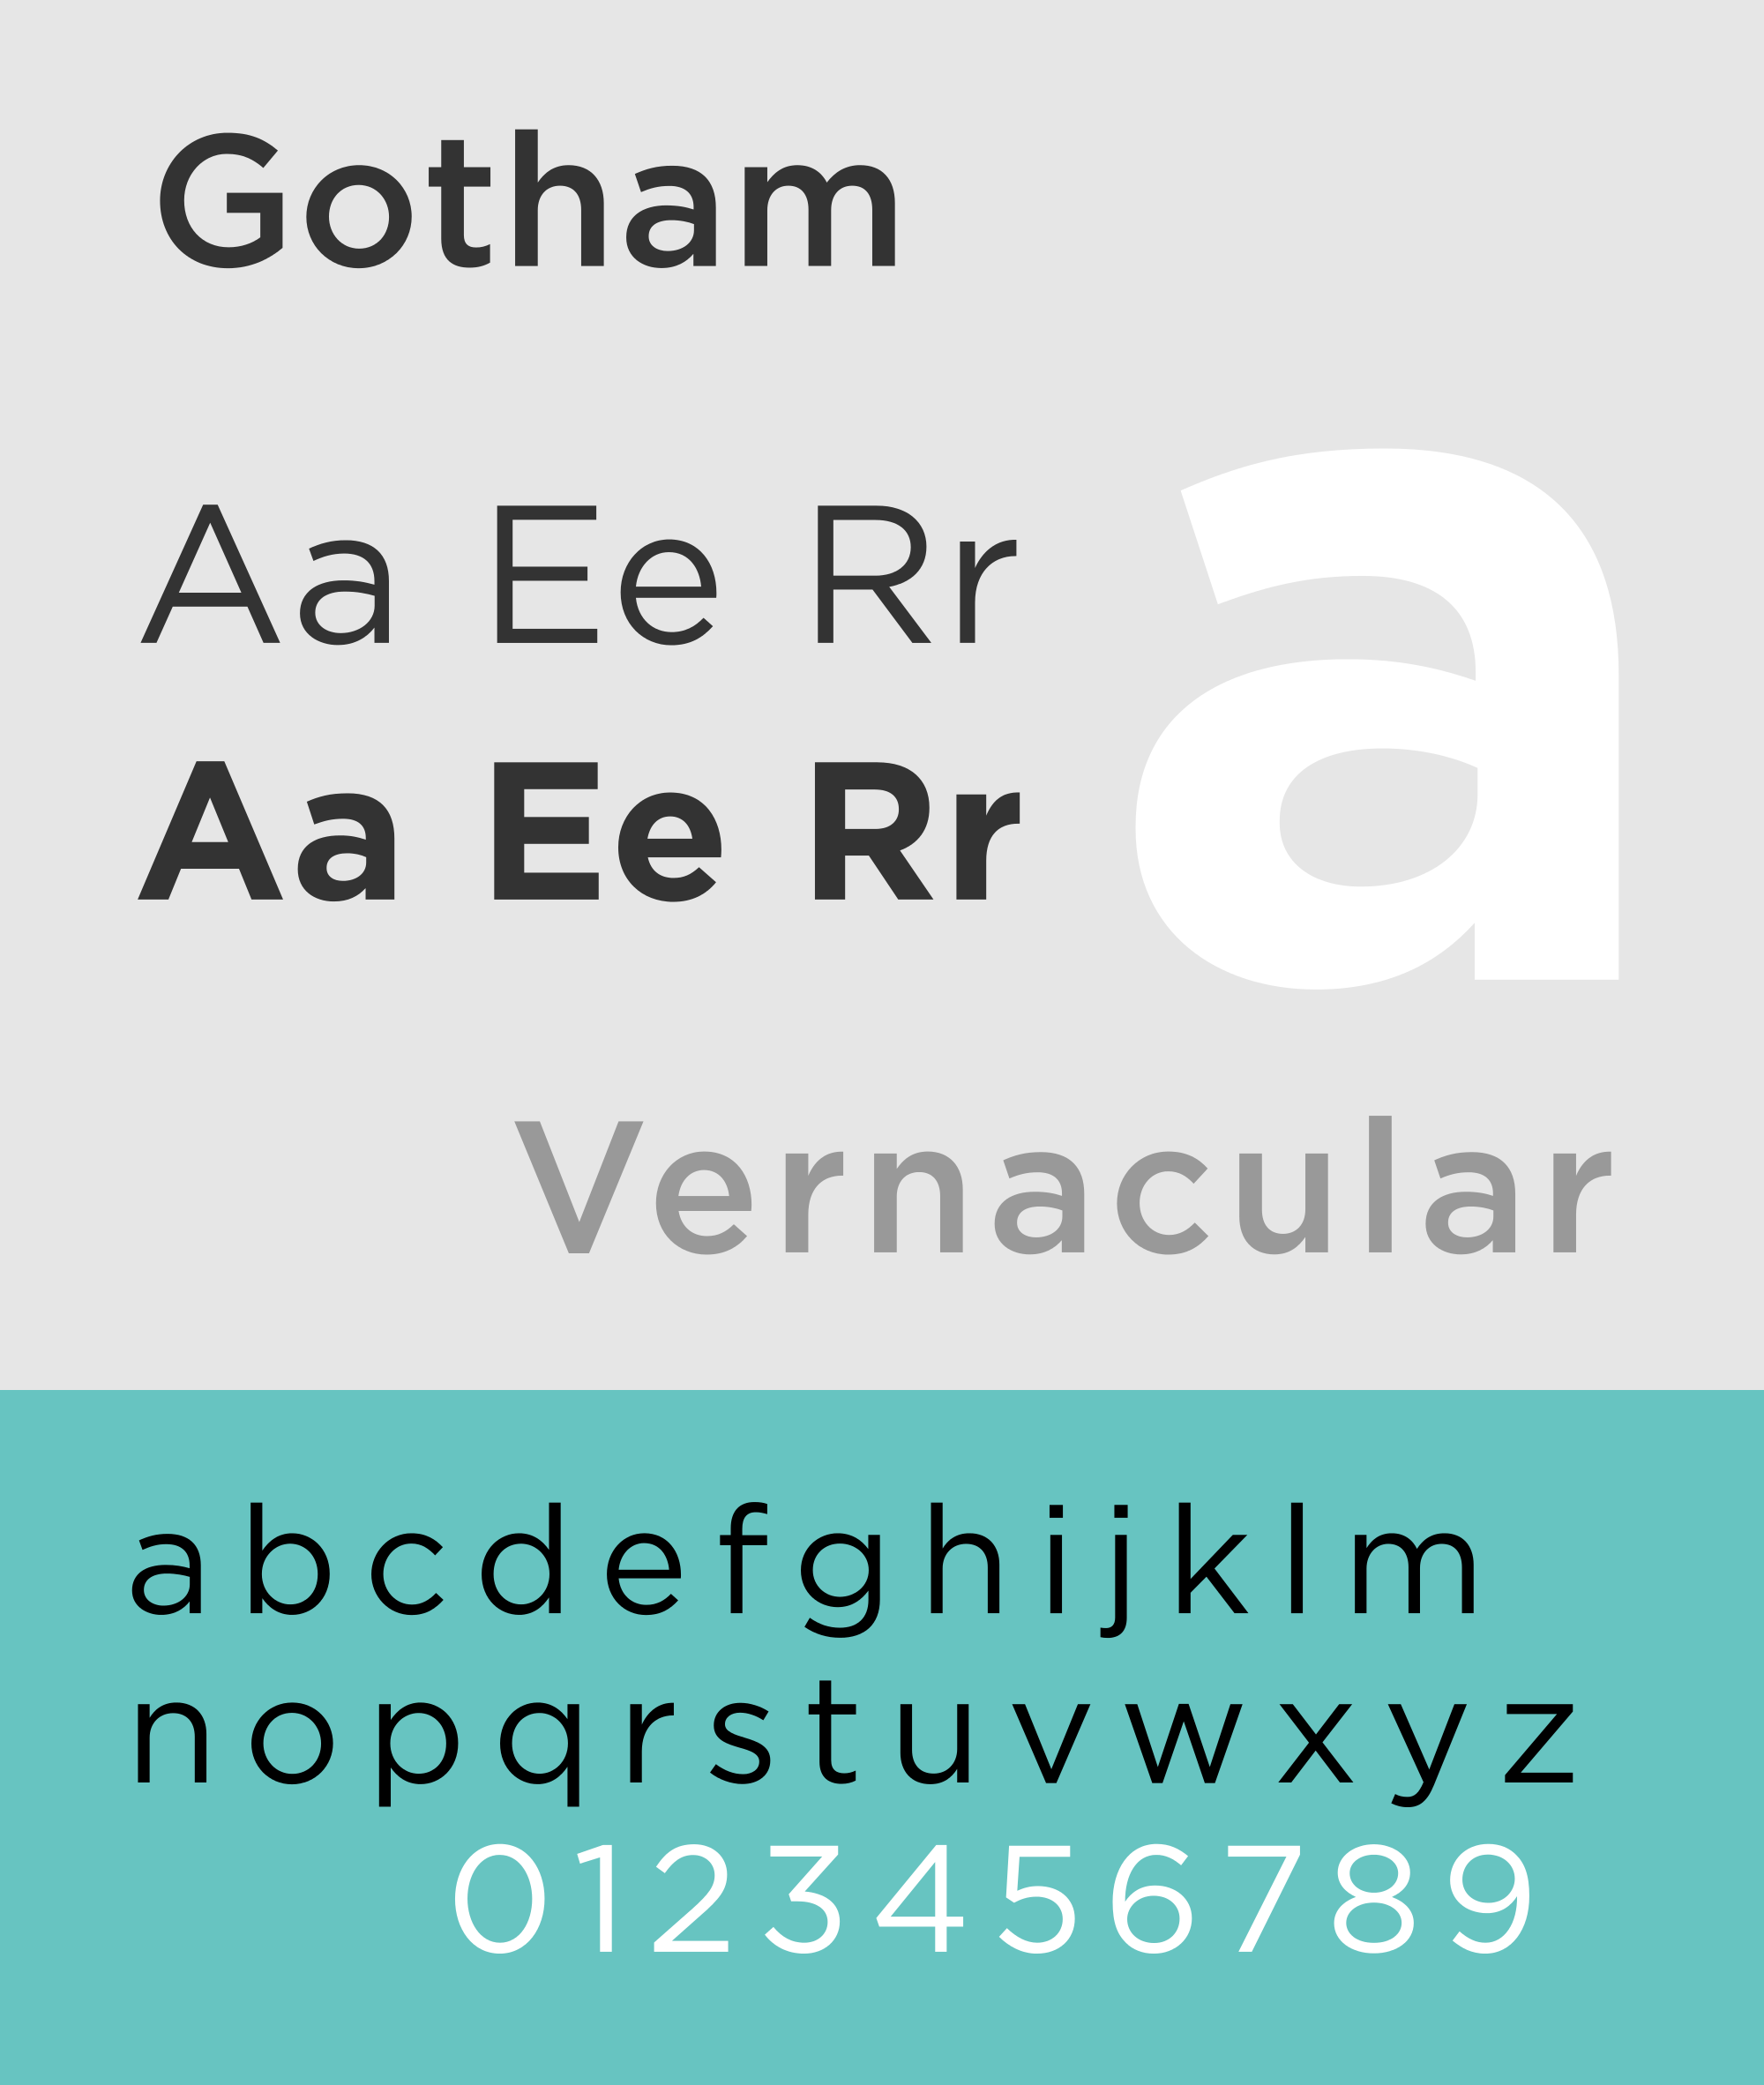 25 most used typefaces in advertising: Gotham